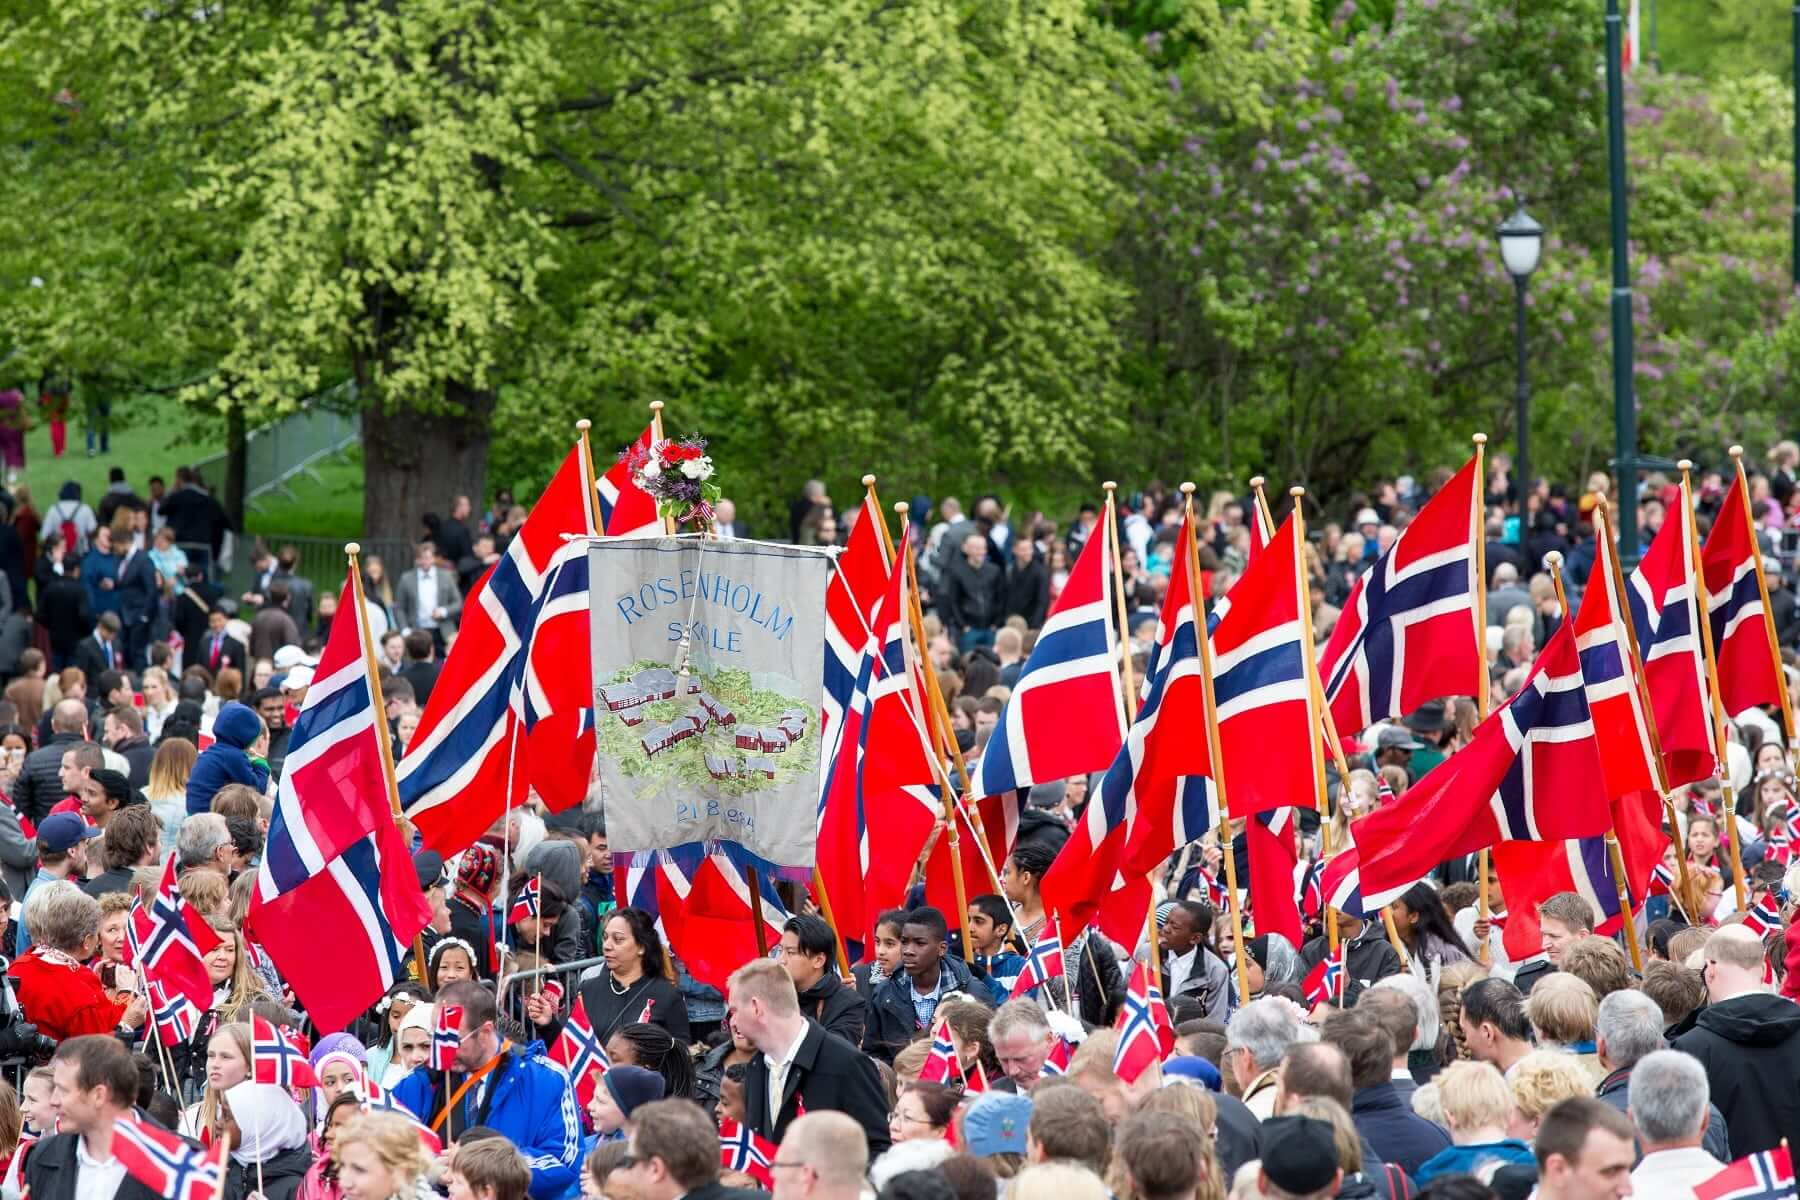 Séjour en Norvège fête nationale - Paul D Smith  Shutterstock.com